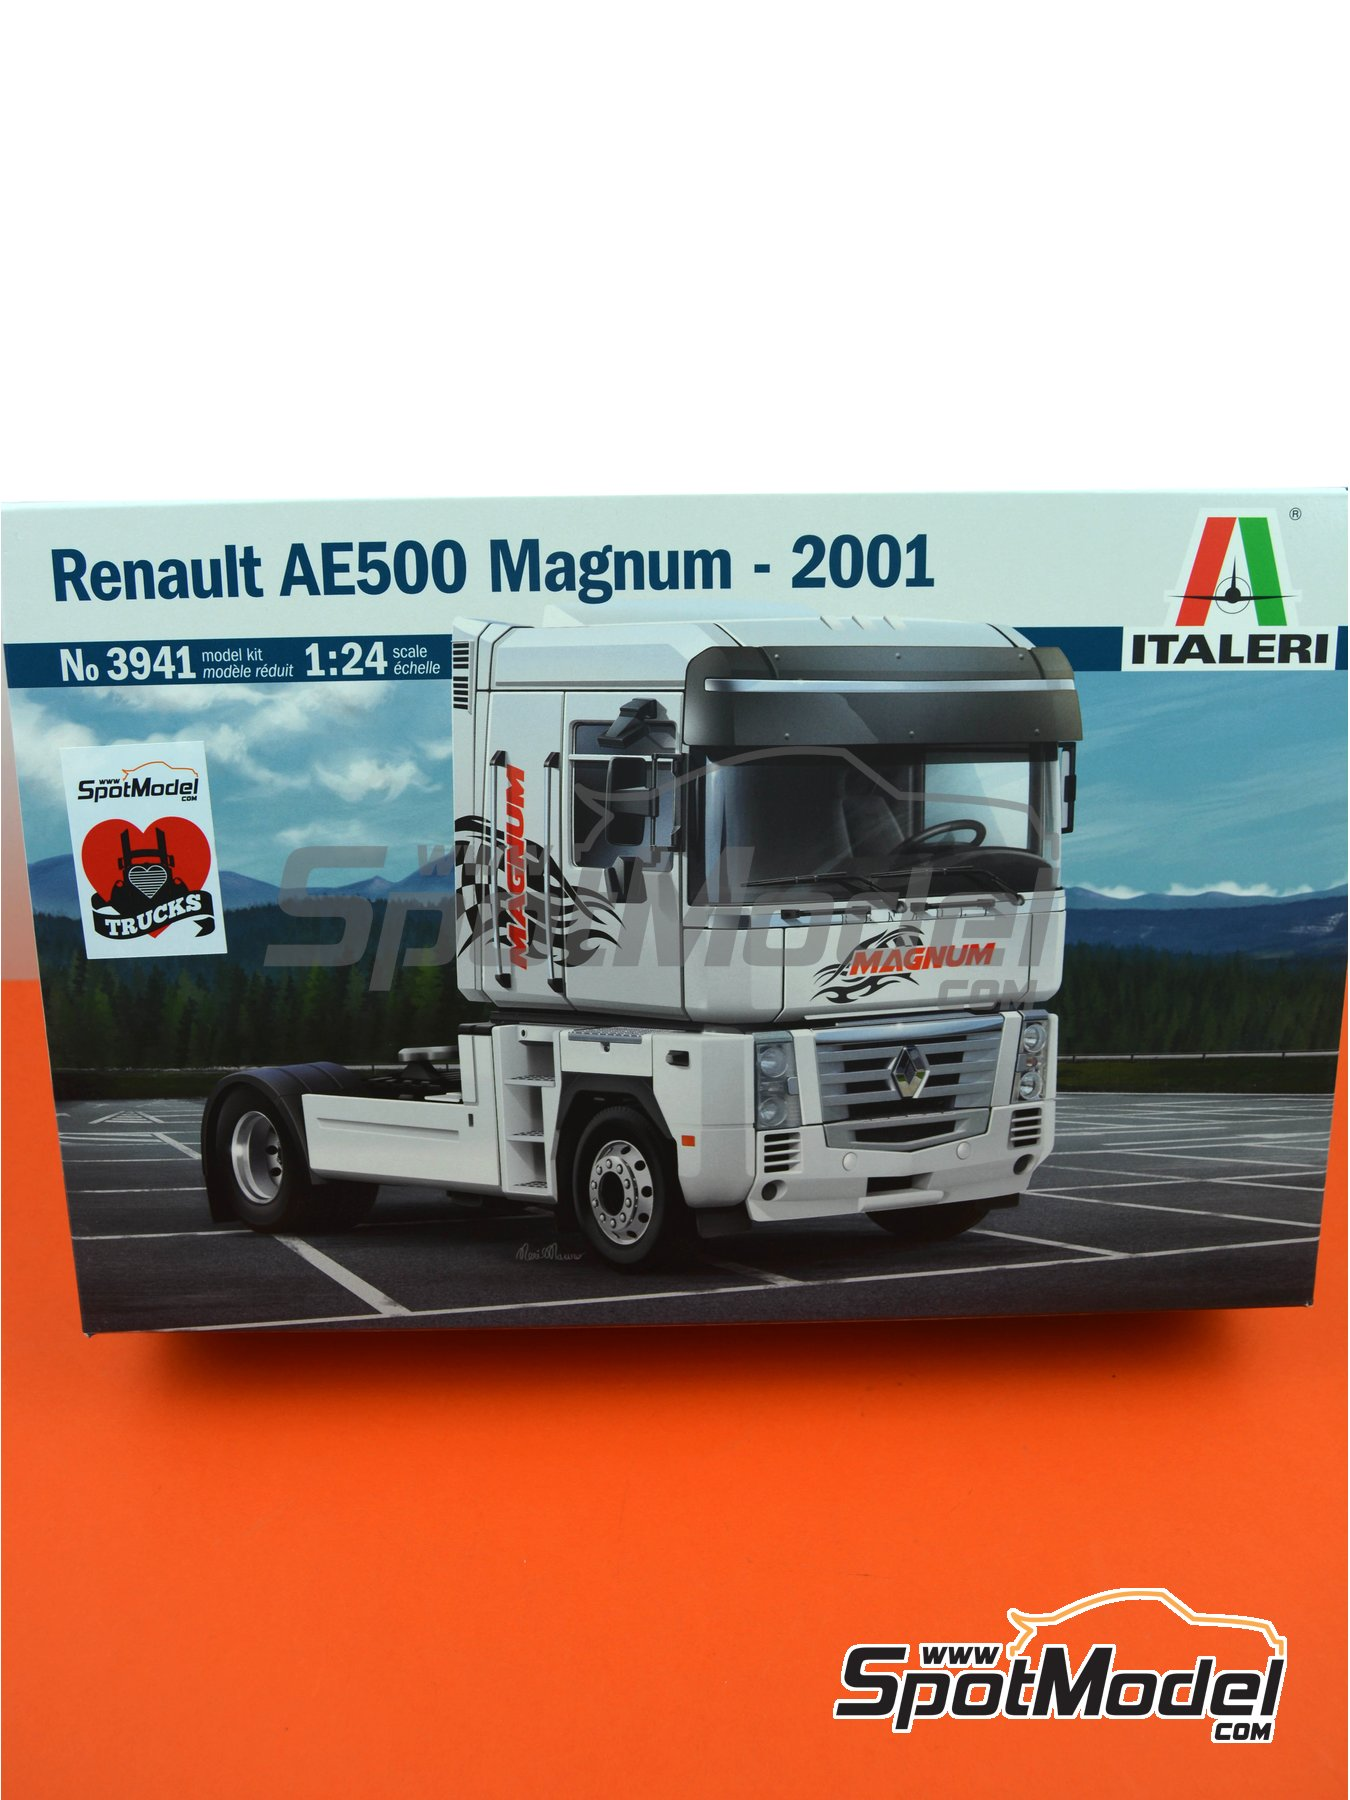 Renault AE 500 Magnum -  2001 | Model truck kit in 1/24 scale manufactured by Italeri (ref. 3941, also ITA3941, CO_33-3941 and IT3941) image